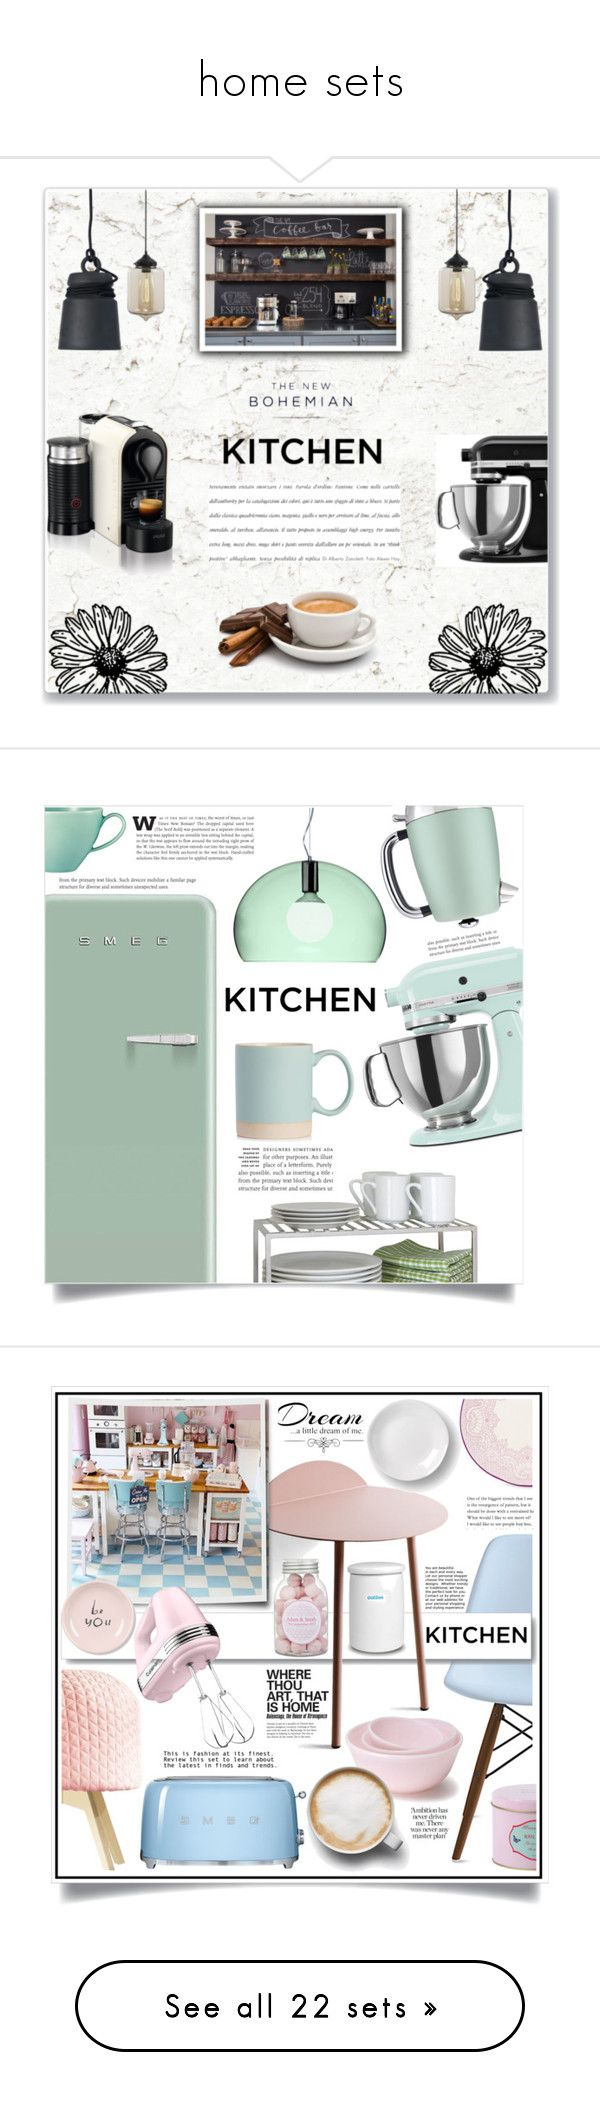 """home sets"" by foxdesigner ❤ liked on Polyvore featuring interior, interiors, interior design, home, home decor, interior decorating, KitchenAid, Nespresso, American Eagle Outfitters and kitchen"